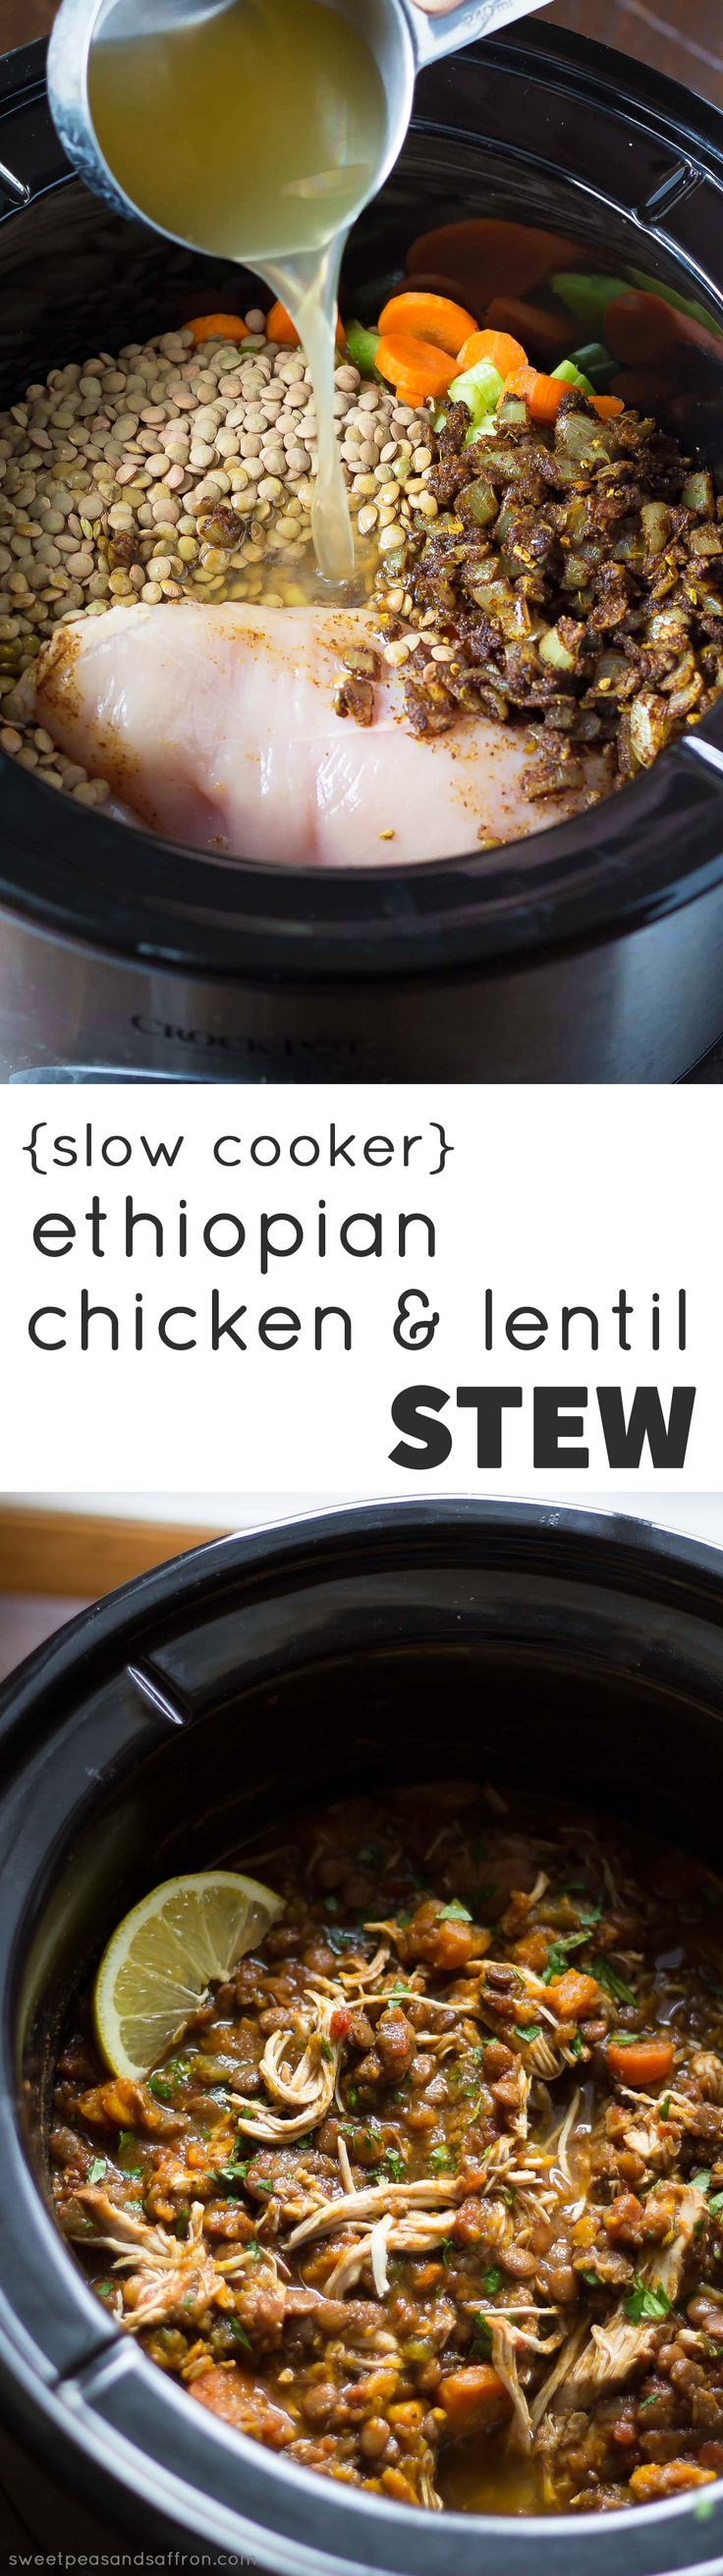 Slow Cooker Chicken & Lentil Ethiopian Stew, made with sweet potatoes and carrots. (Minus the chicken)